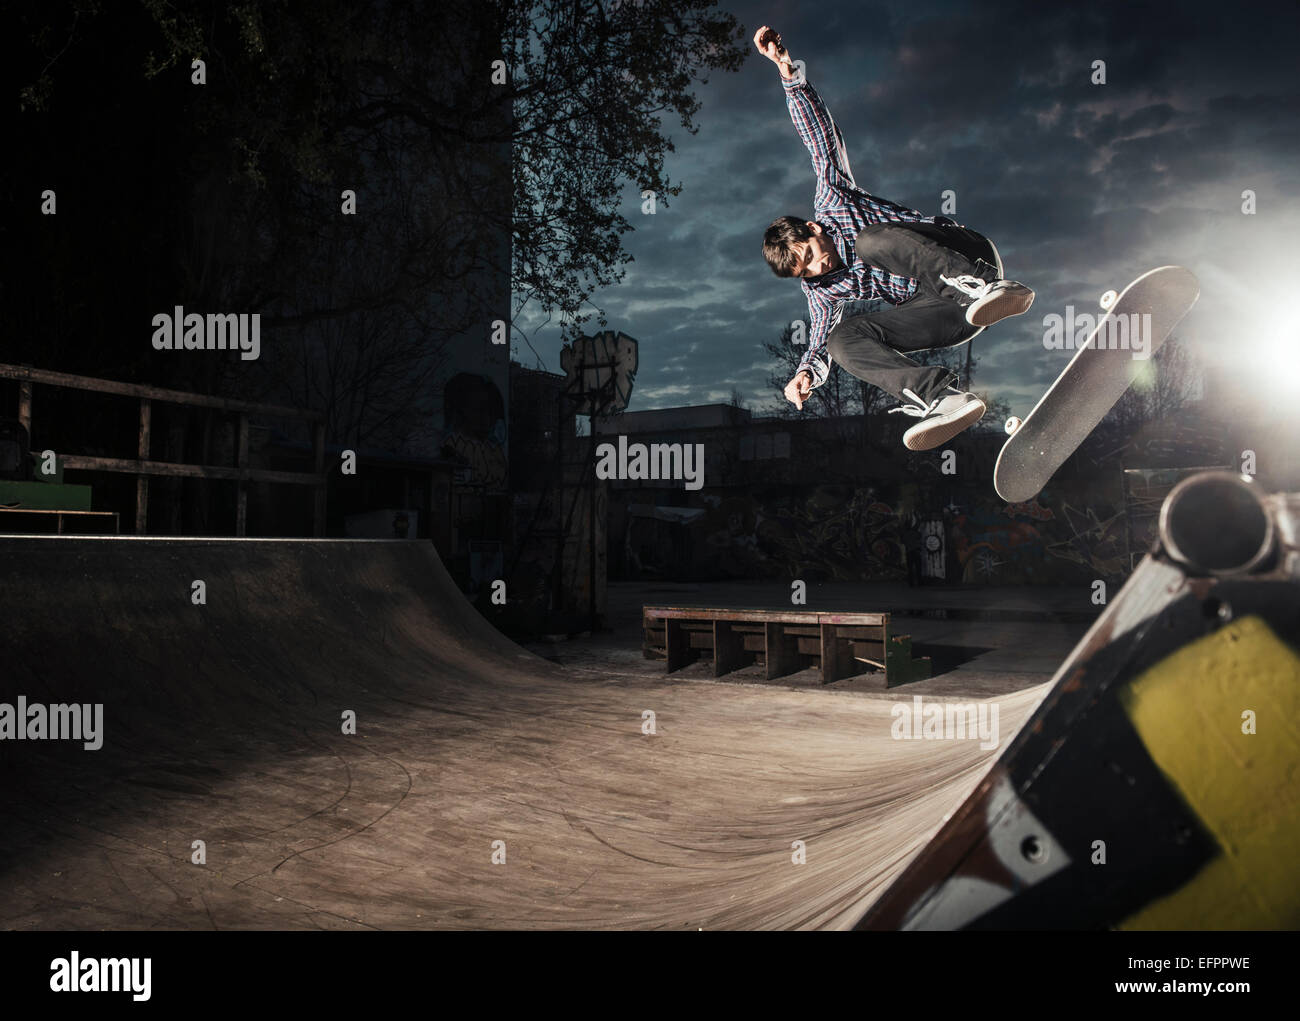 Skateboarding on mini ramp, Bigspin flip, Berlin, Germany - Stock Image